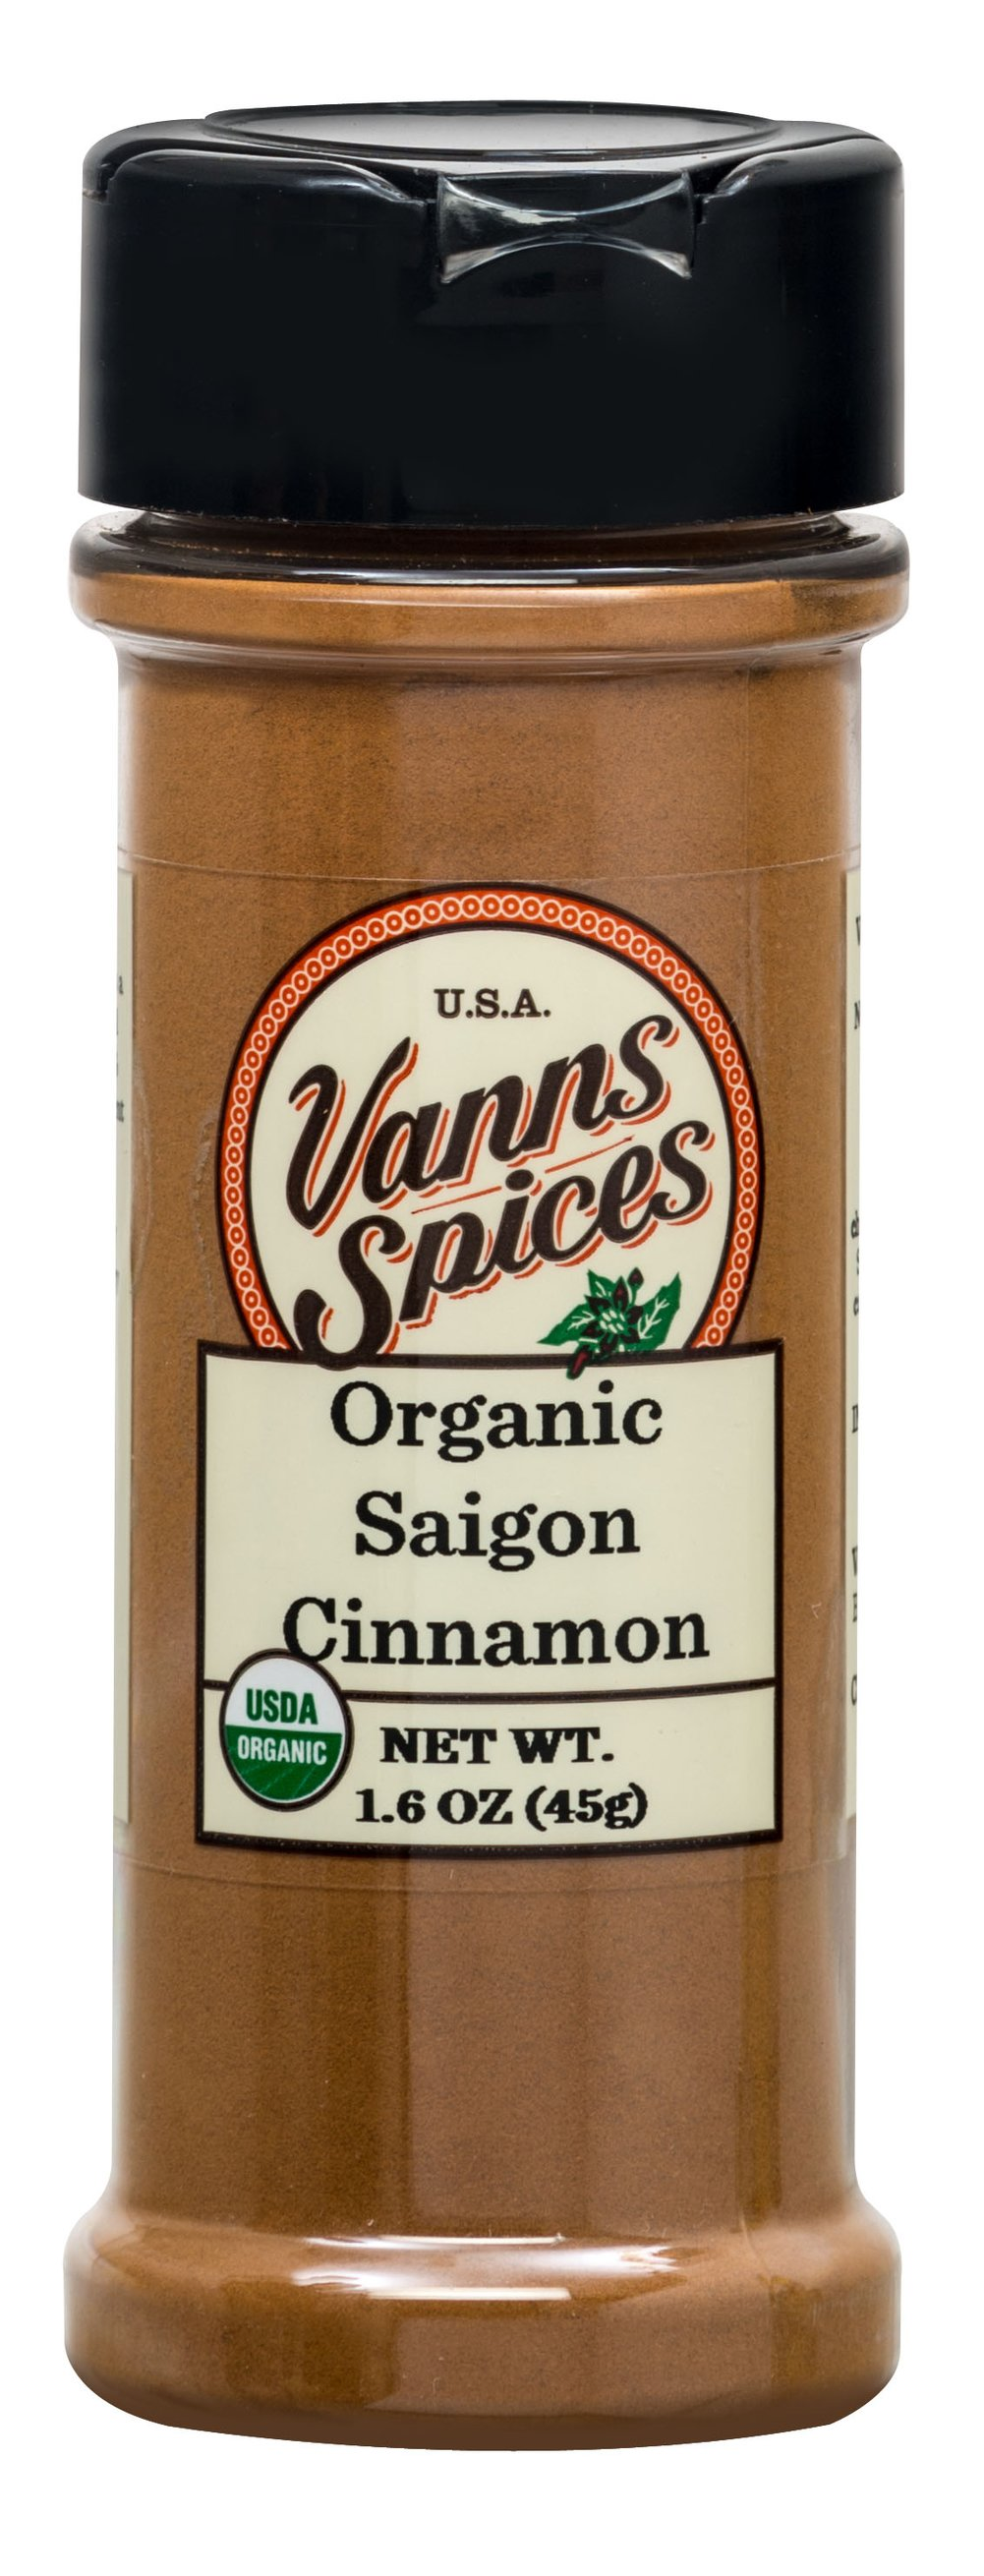 Organic Ground Saigon Cinnamon  1.6 oz Bottle  $7.19